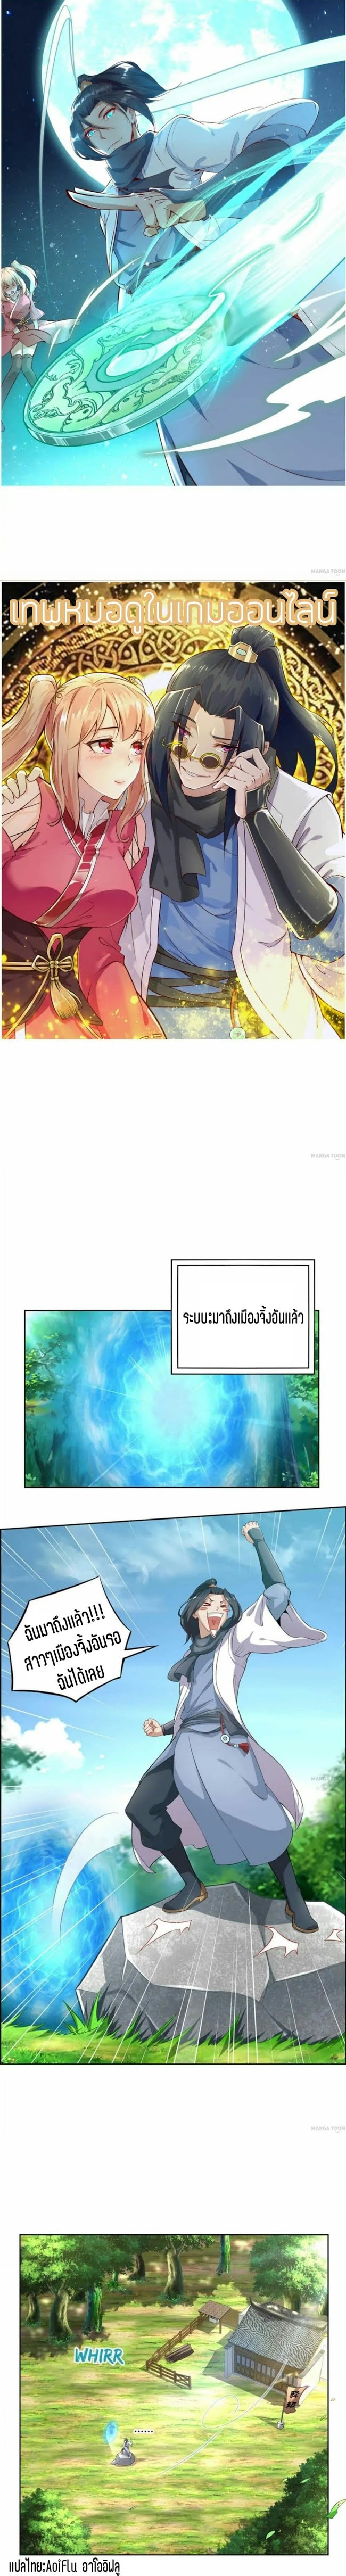 Fortune Telling Online is IMBA-ตอนที่ 2